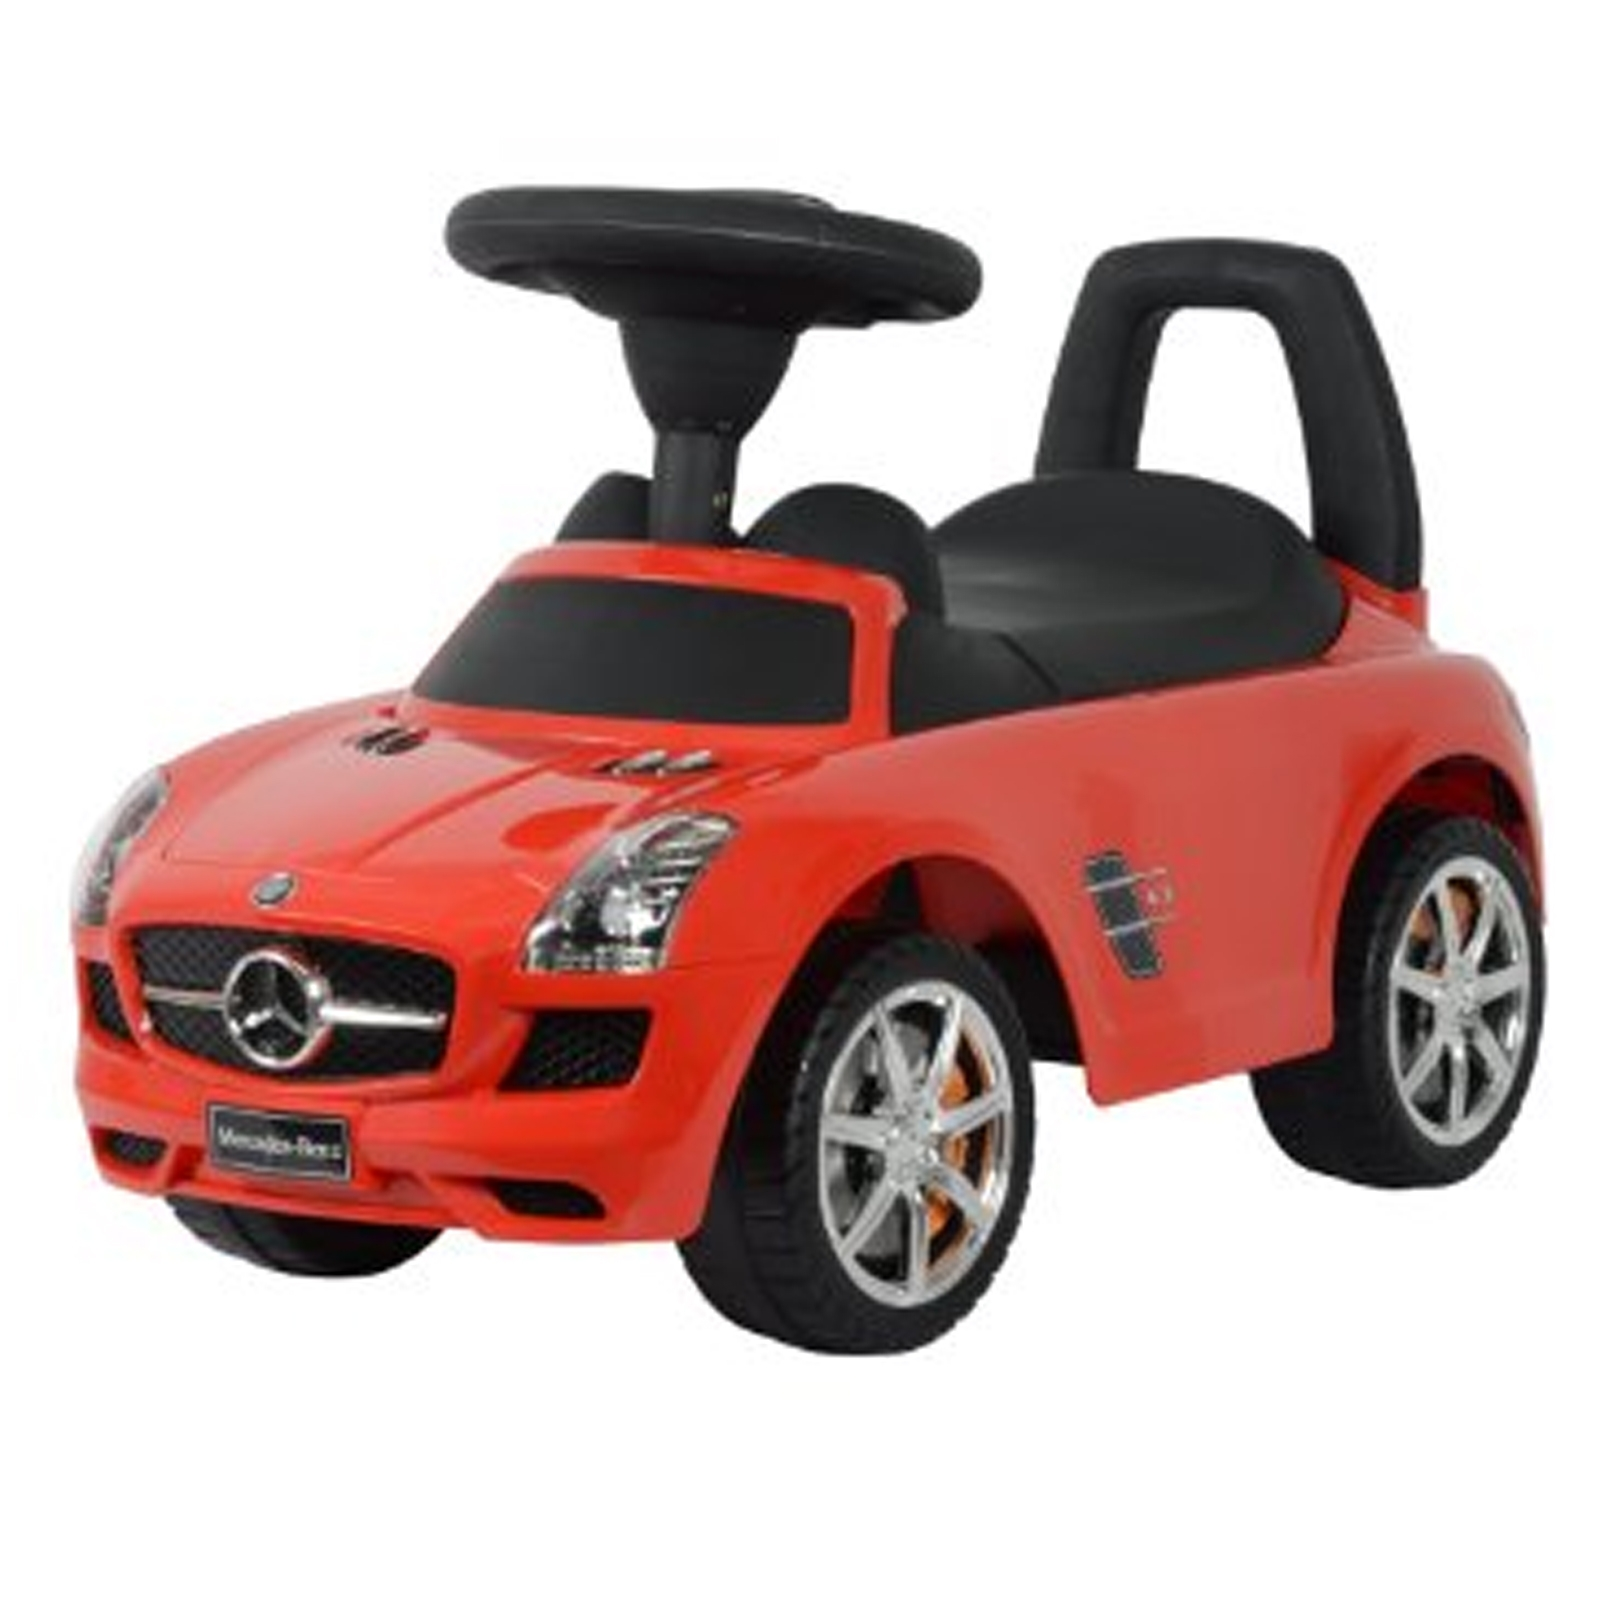 Licensed Mercedes Benz Kids Ride On Push Car - Red